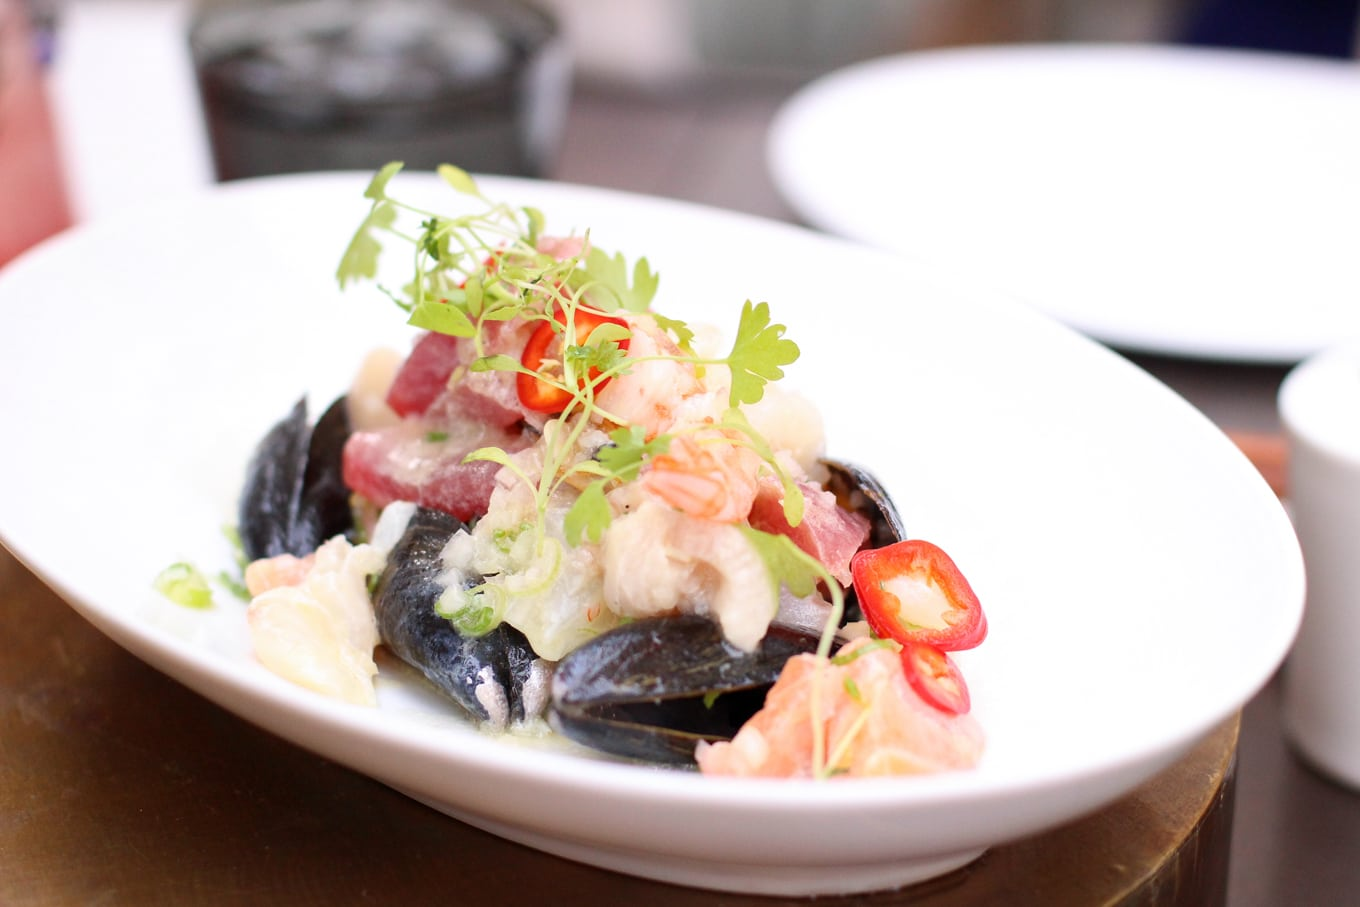 Once we sat down, they kicked off the meal with a beautiful ceviche and salmon tataki.